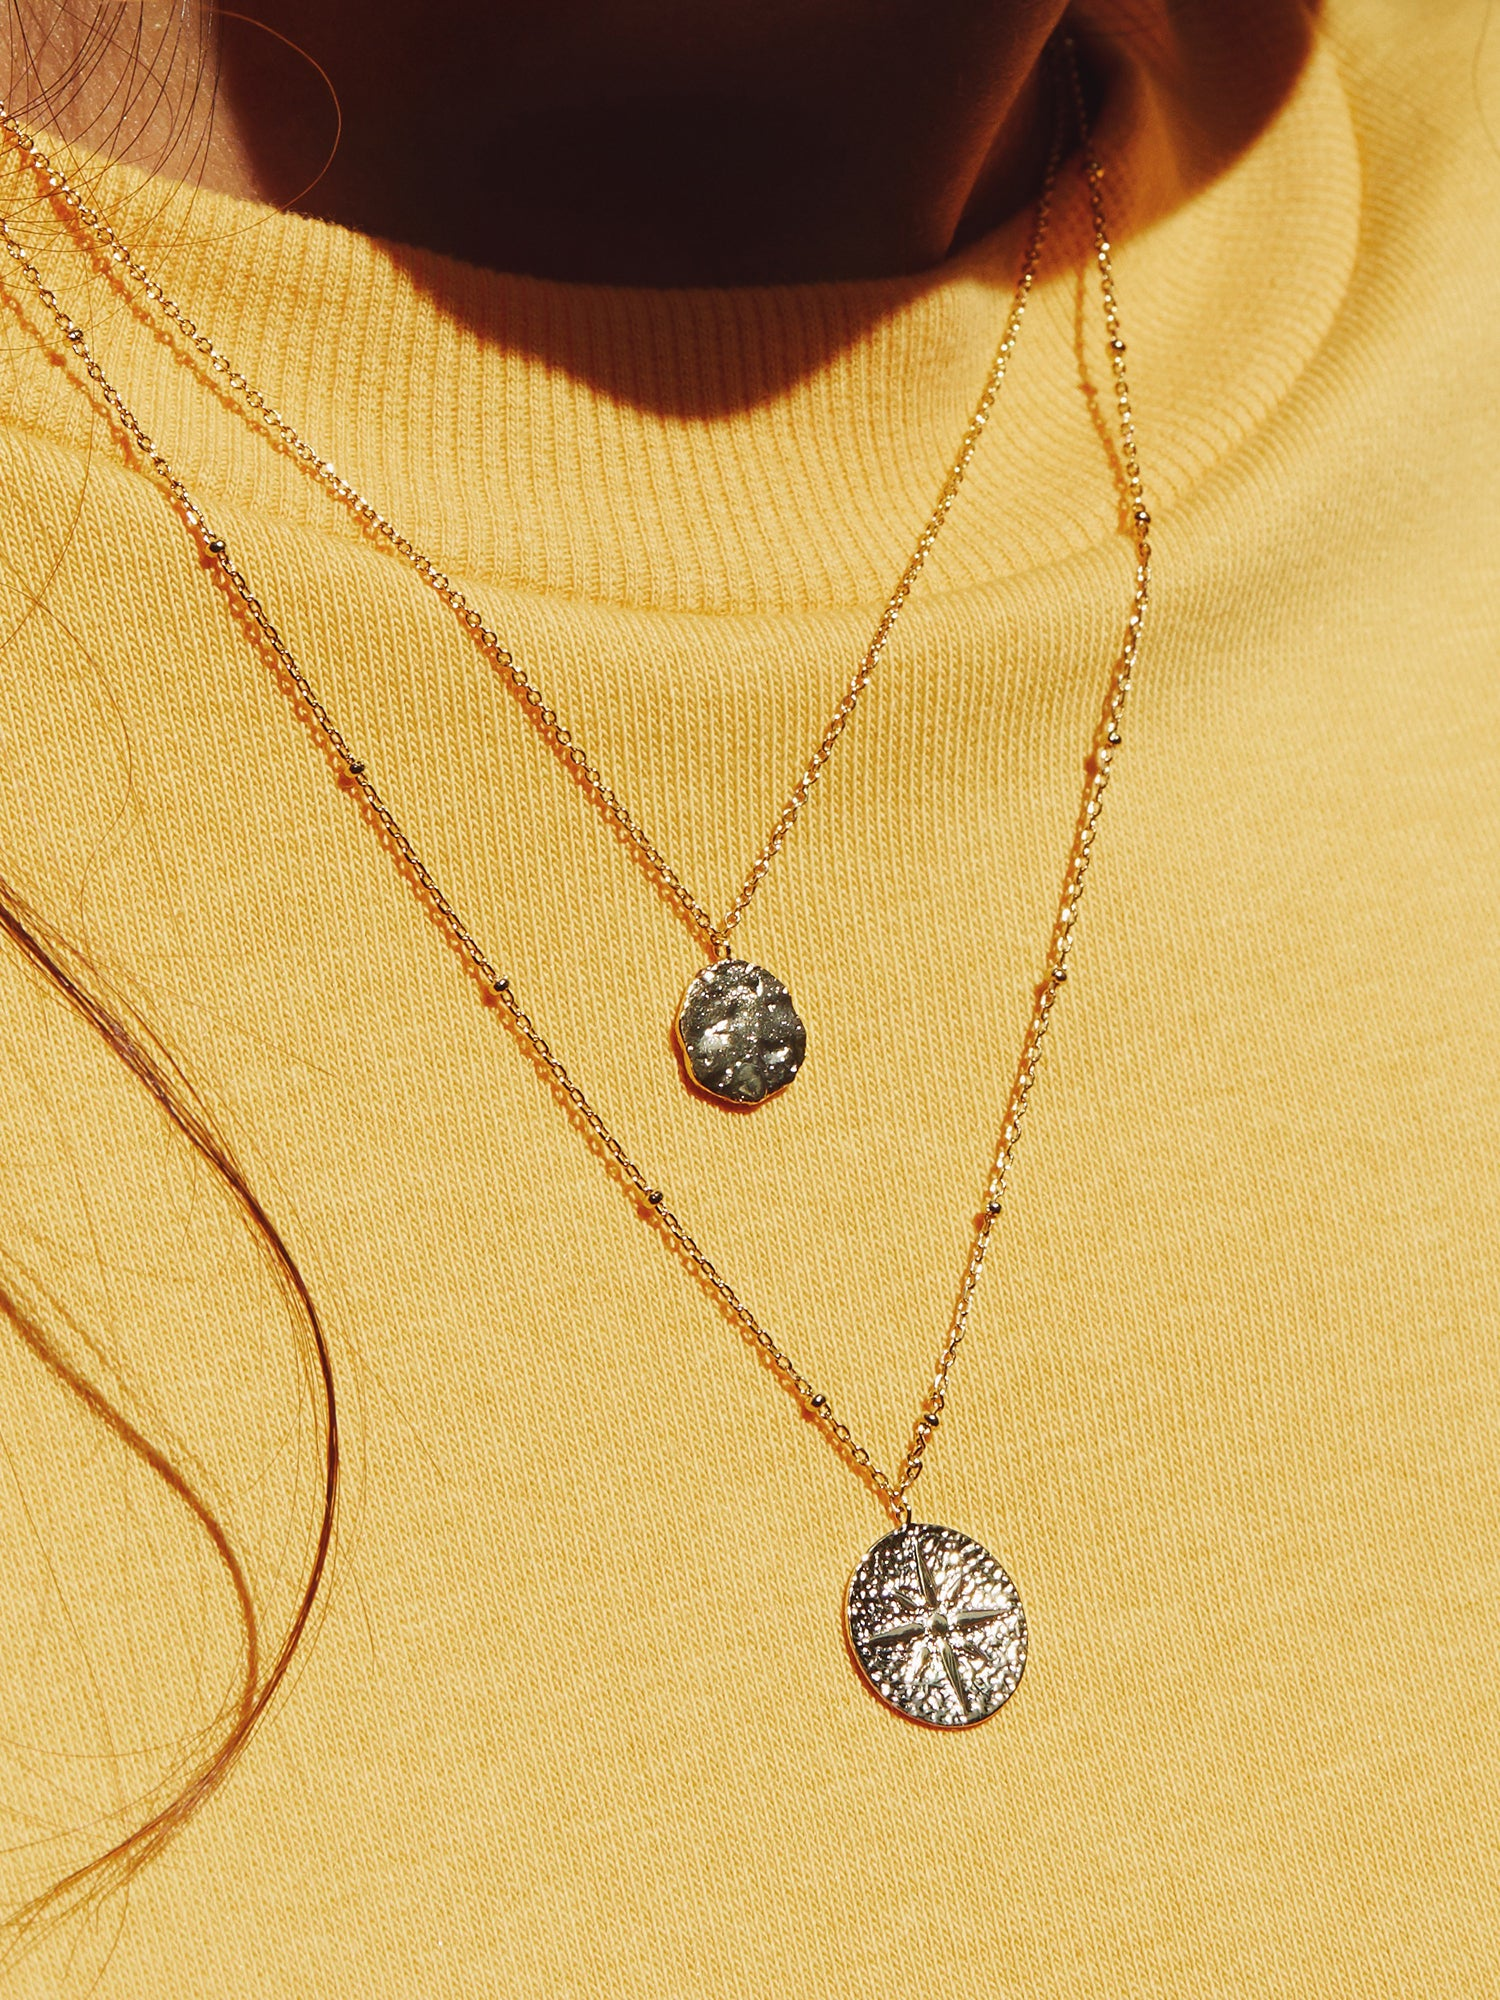 MINI ETCHED COIN NECKLACE & ETCHED COMPASS COIN NECKLACE